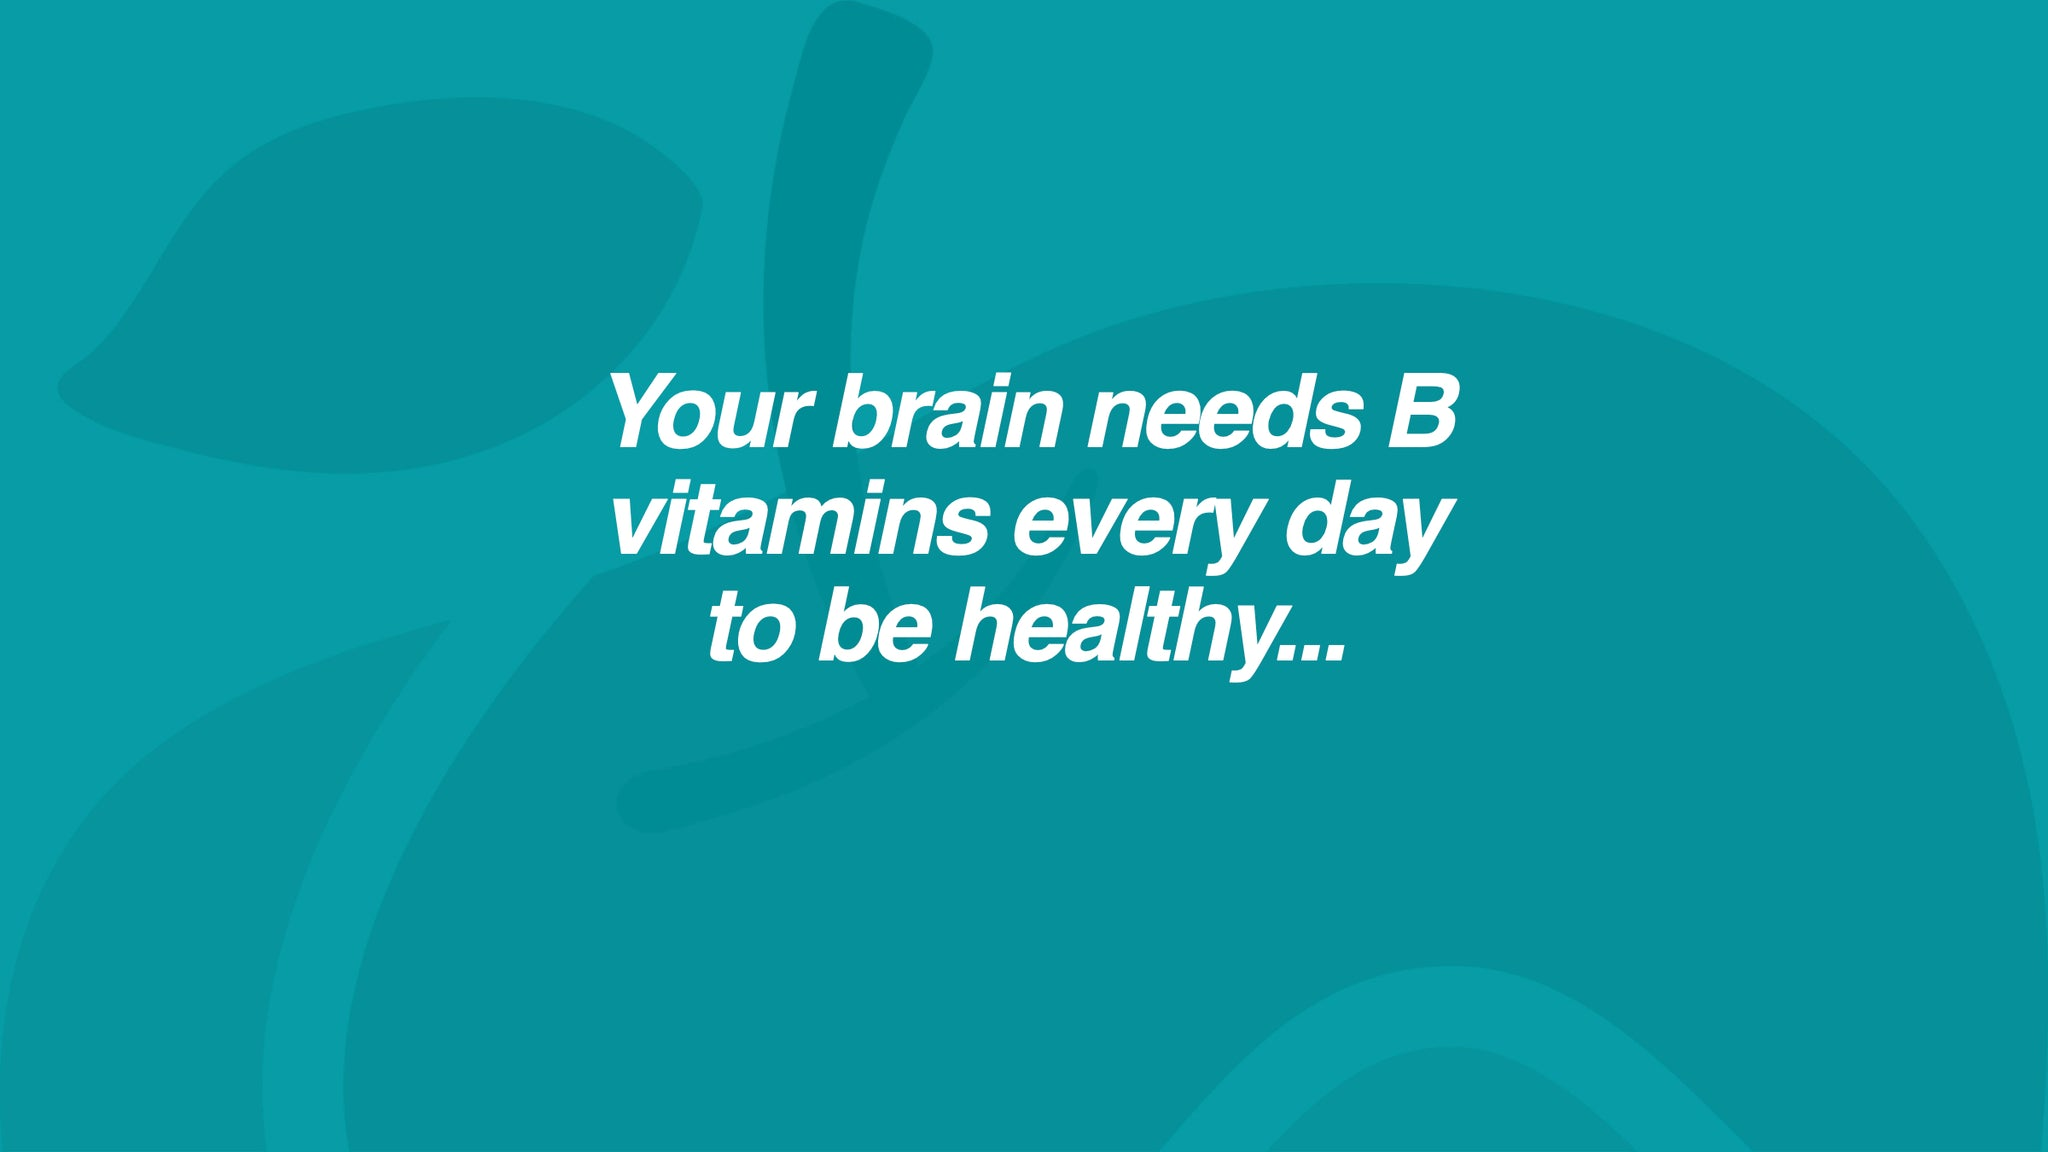 Your brain needs B vitamins every day to be healthy...